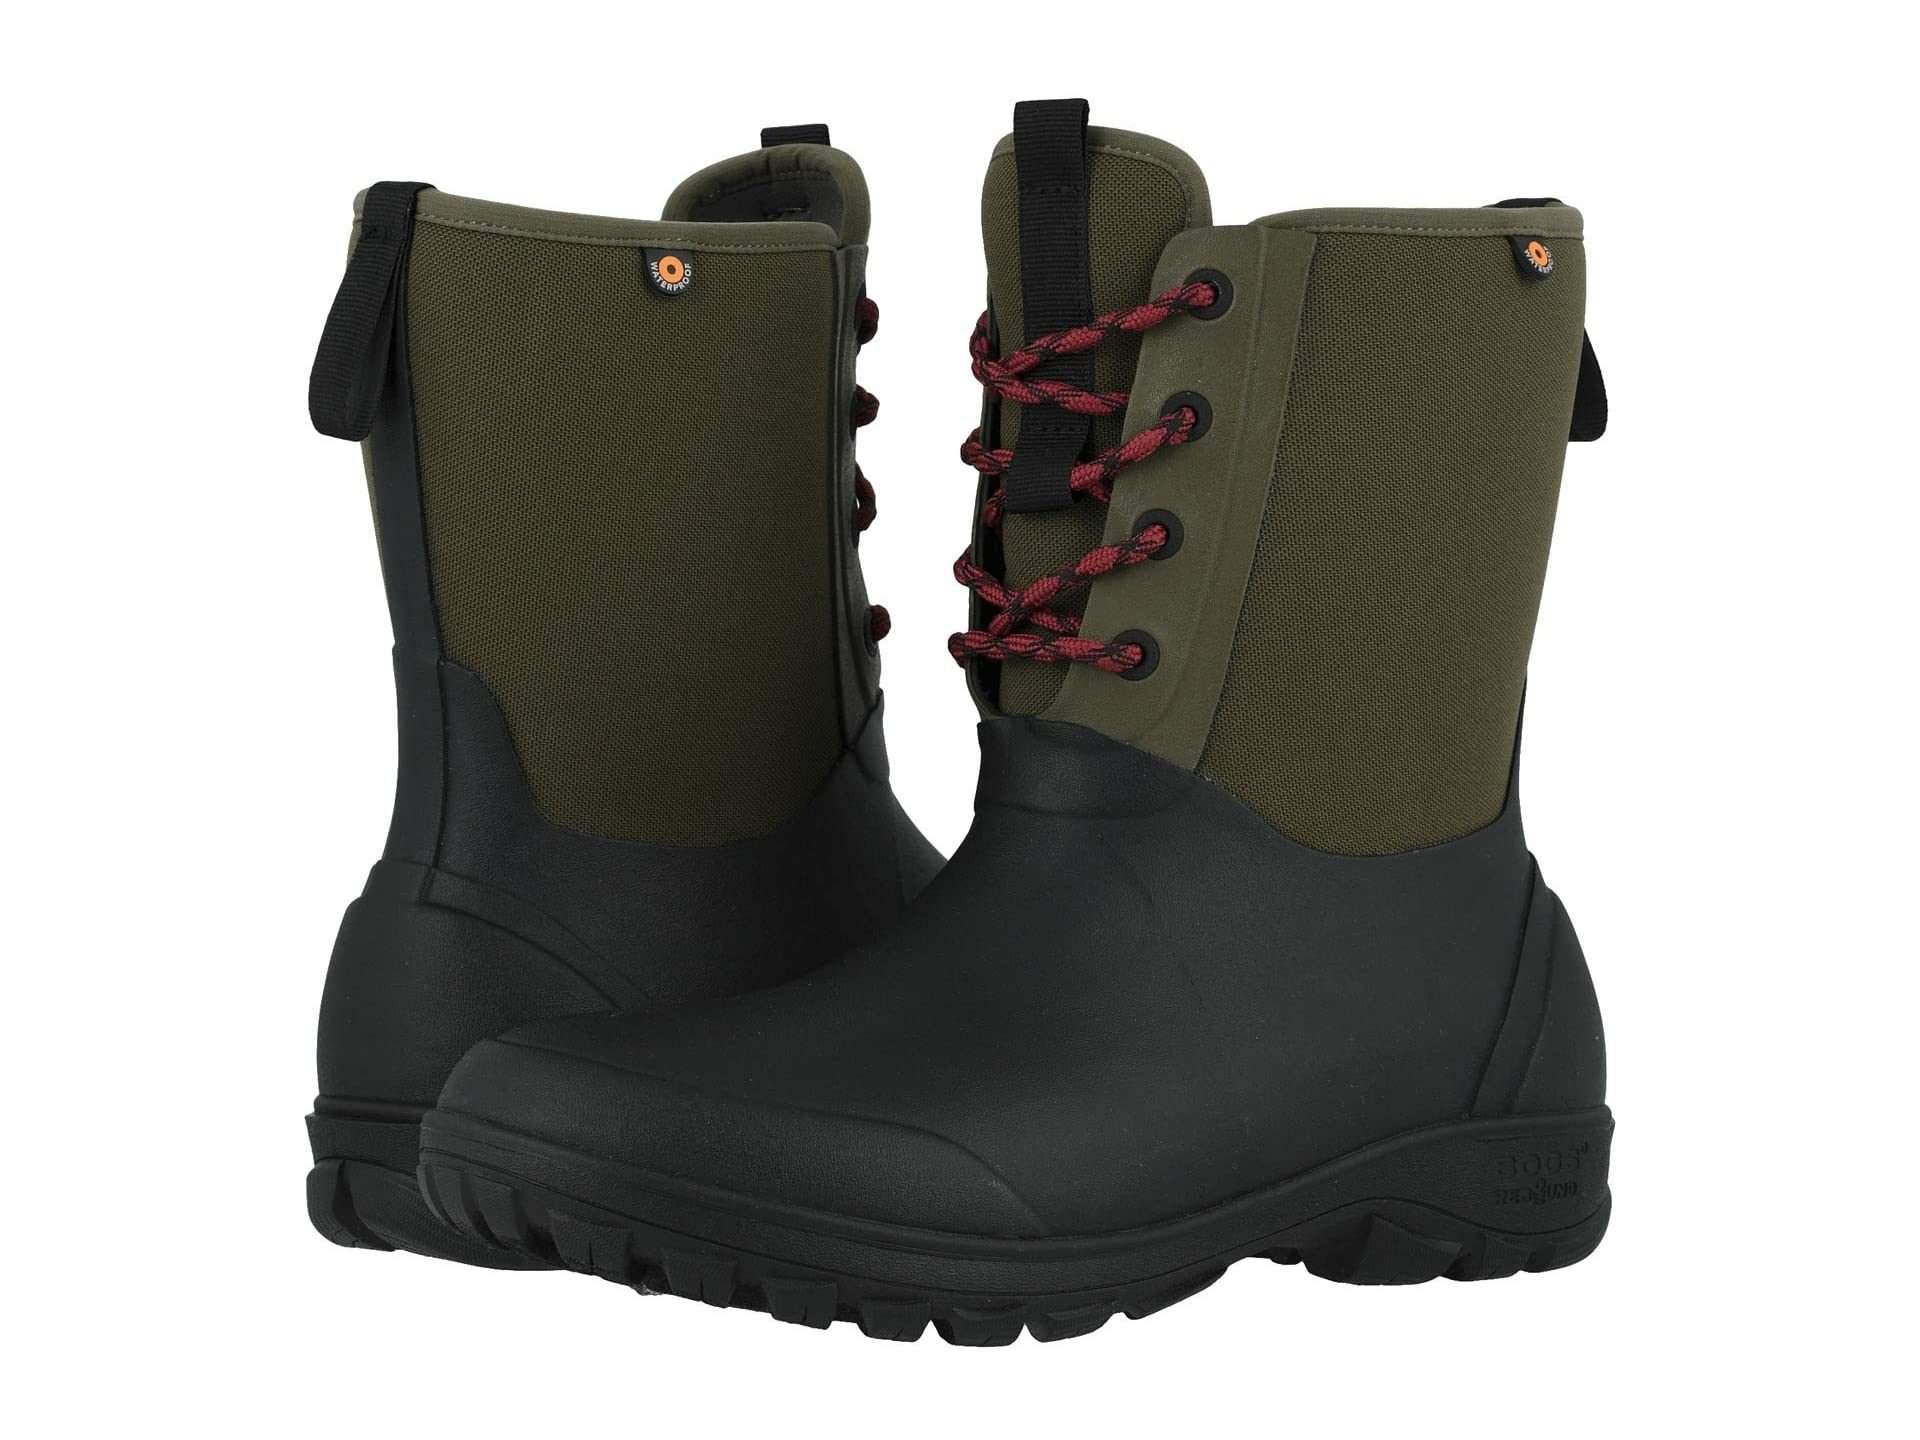 Bogs Sauvie Snow boot